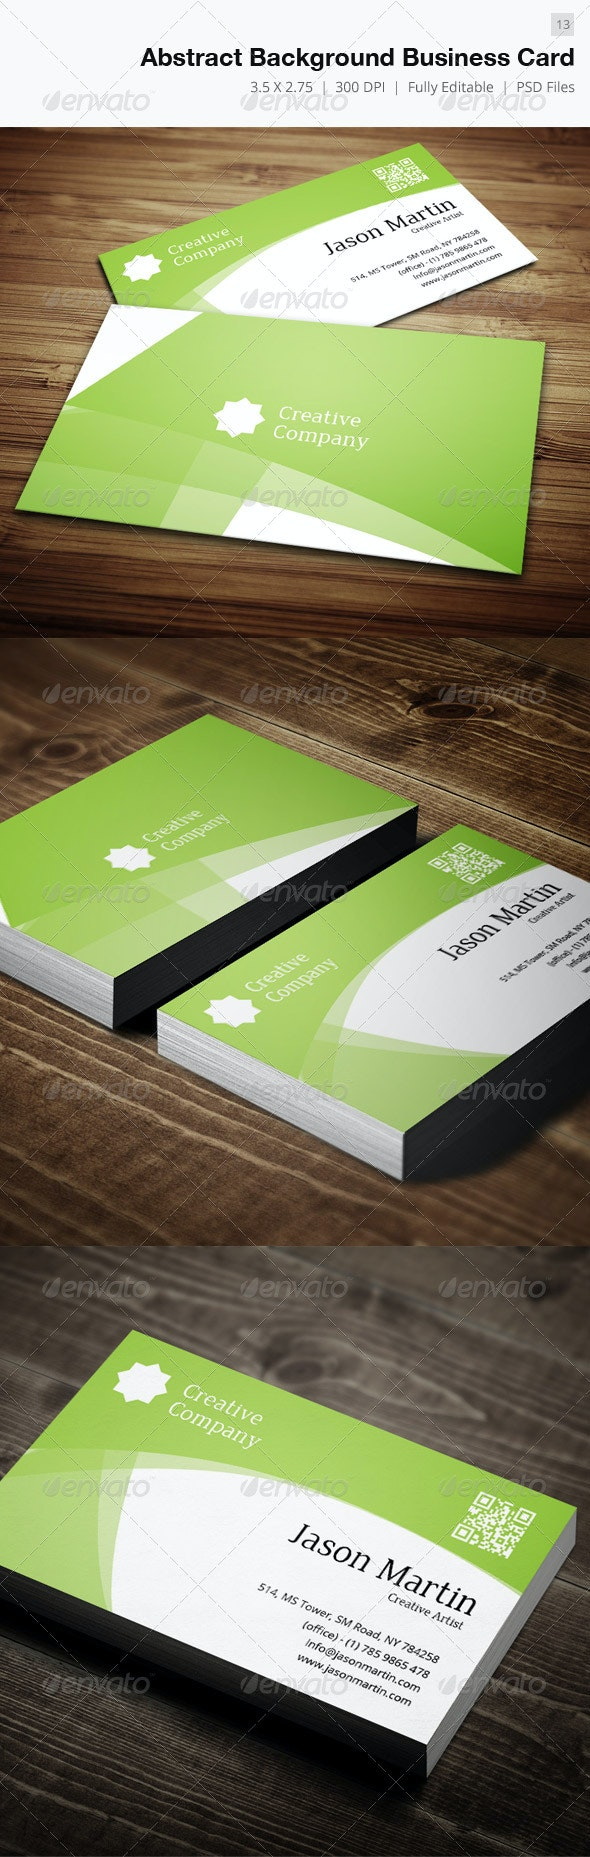 Abstract Background Business Card - 13 - Creative Business Cards